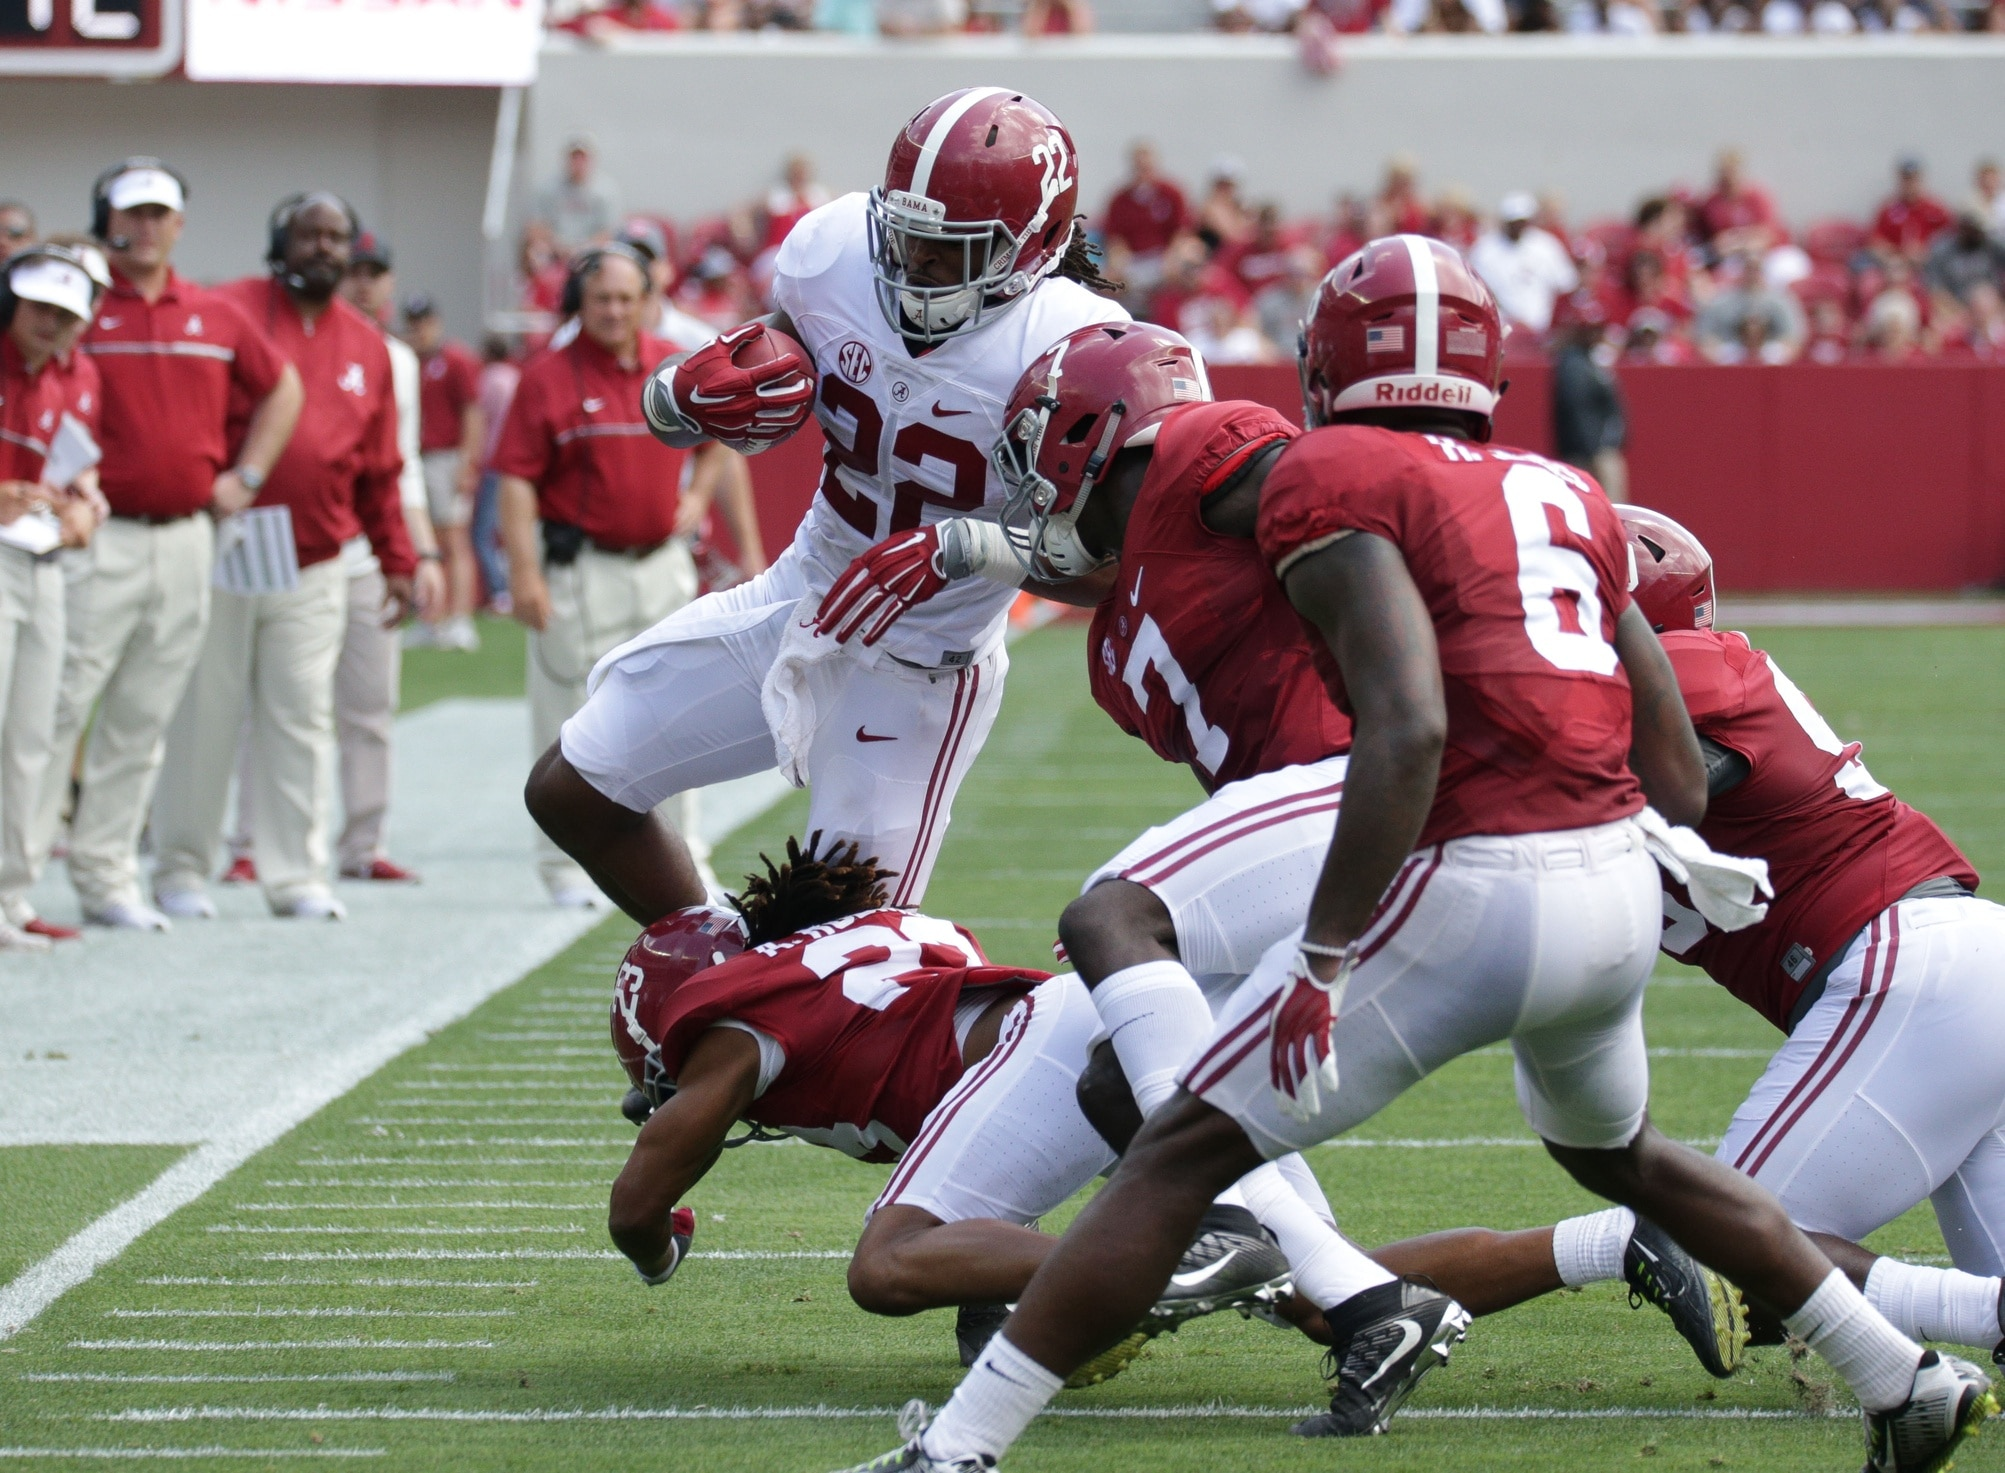 Najee Harris is an among the impact college football freshmen set to dominate in 2017